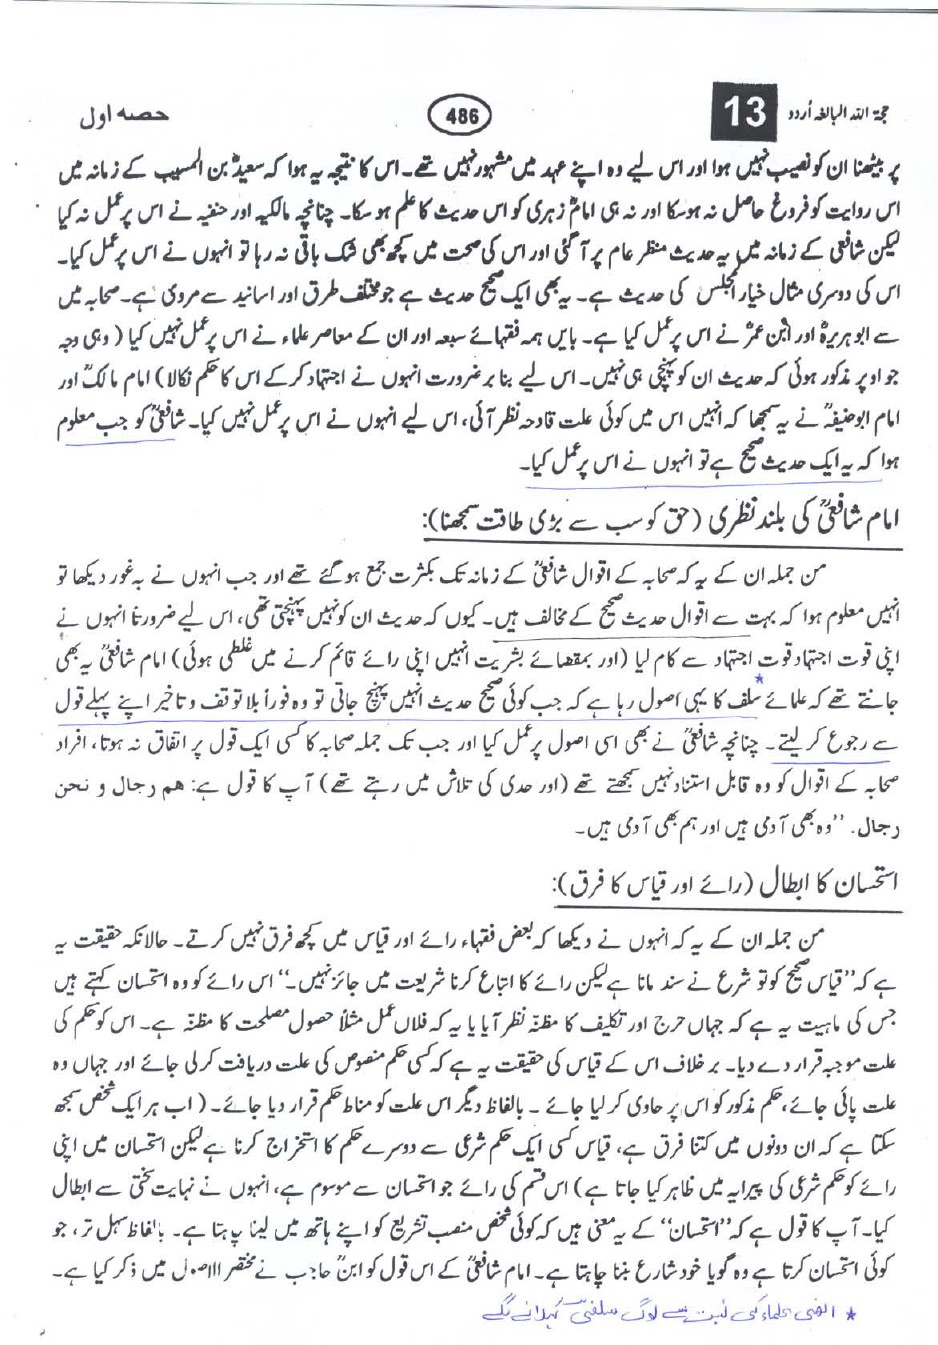 pak study hazrat shah waliullah Department of islamic studies, amu aligarh, for his kind attitude,  shah  waliullah was a witness to the political, religious, educational, economical and   those failing to attract people to the quran and sunnah of the prophet  muhammad  shah wali allah tarikhi pas manzar, al-rahim journal,  hyderabad pakistan.